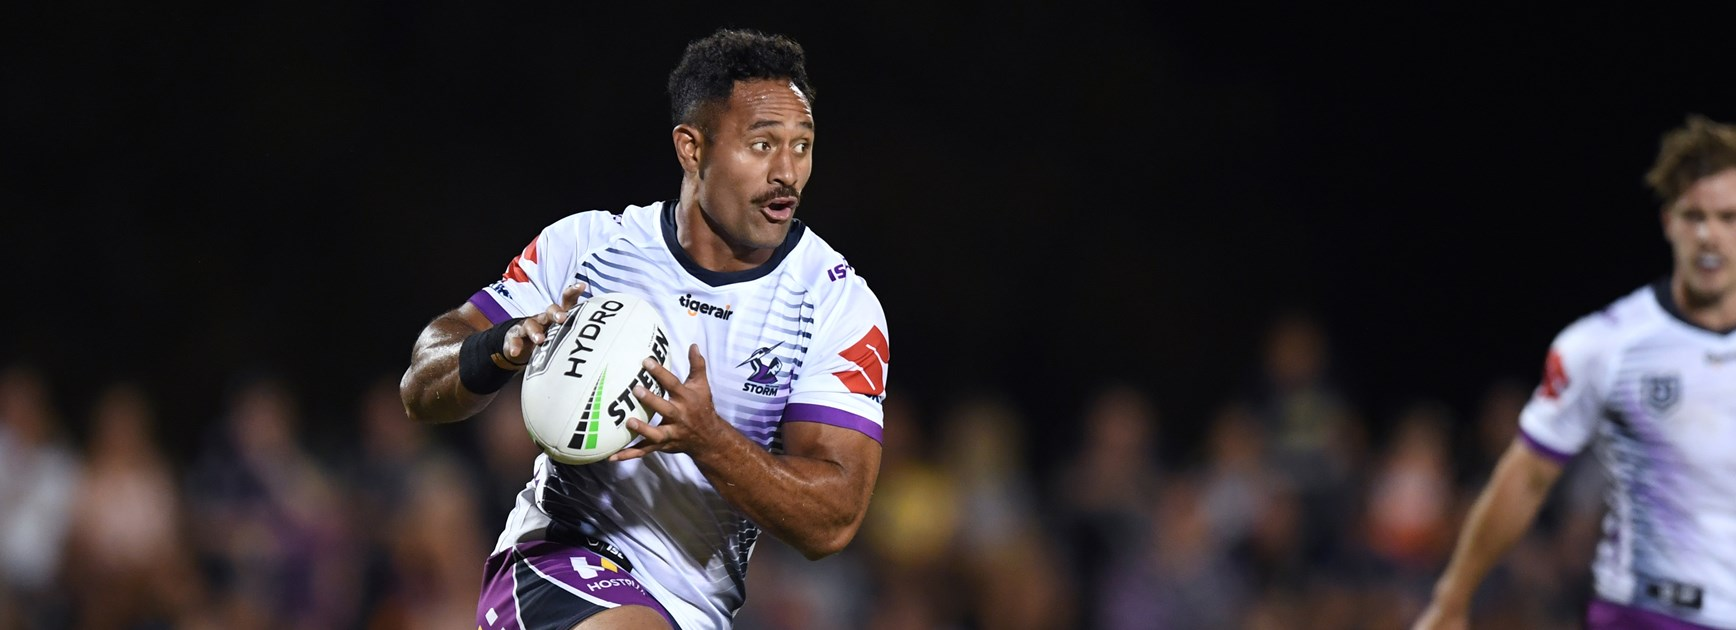 Patrick Kaufusi to leave Melbourne Storm